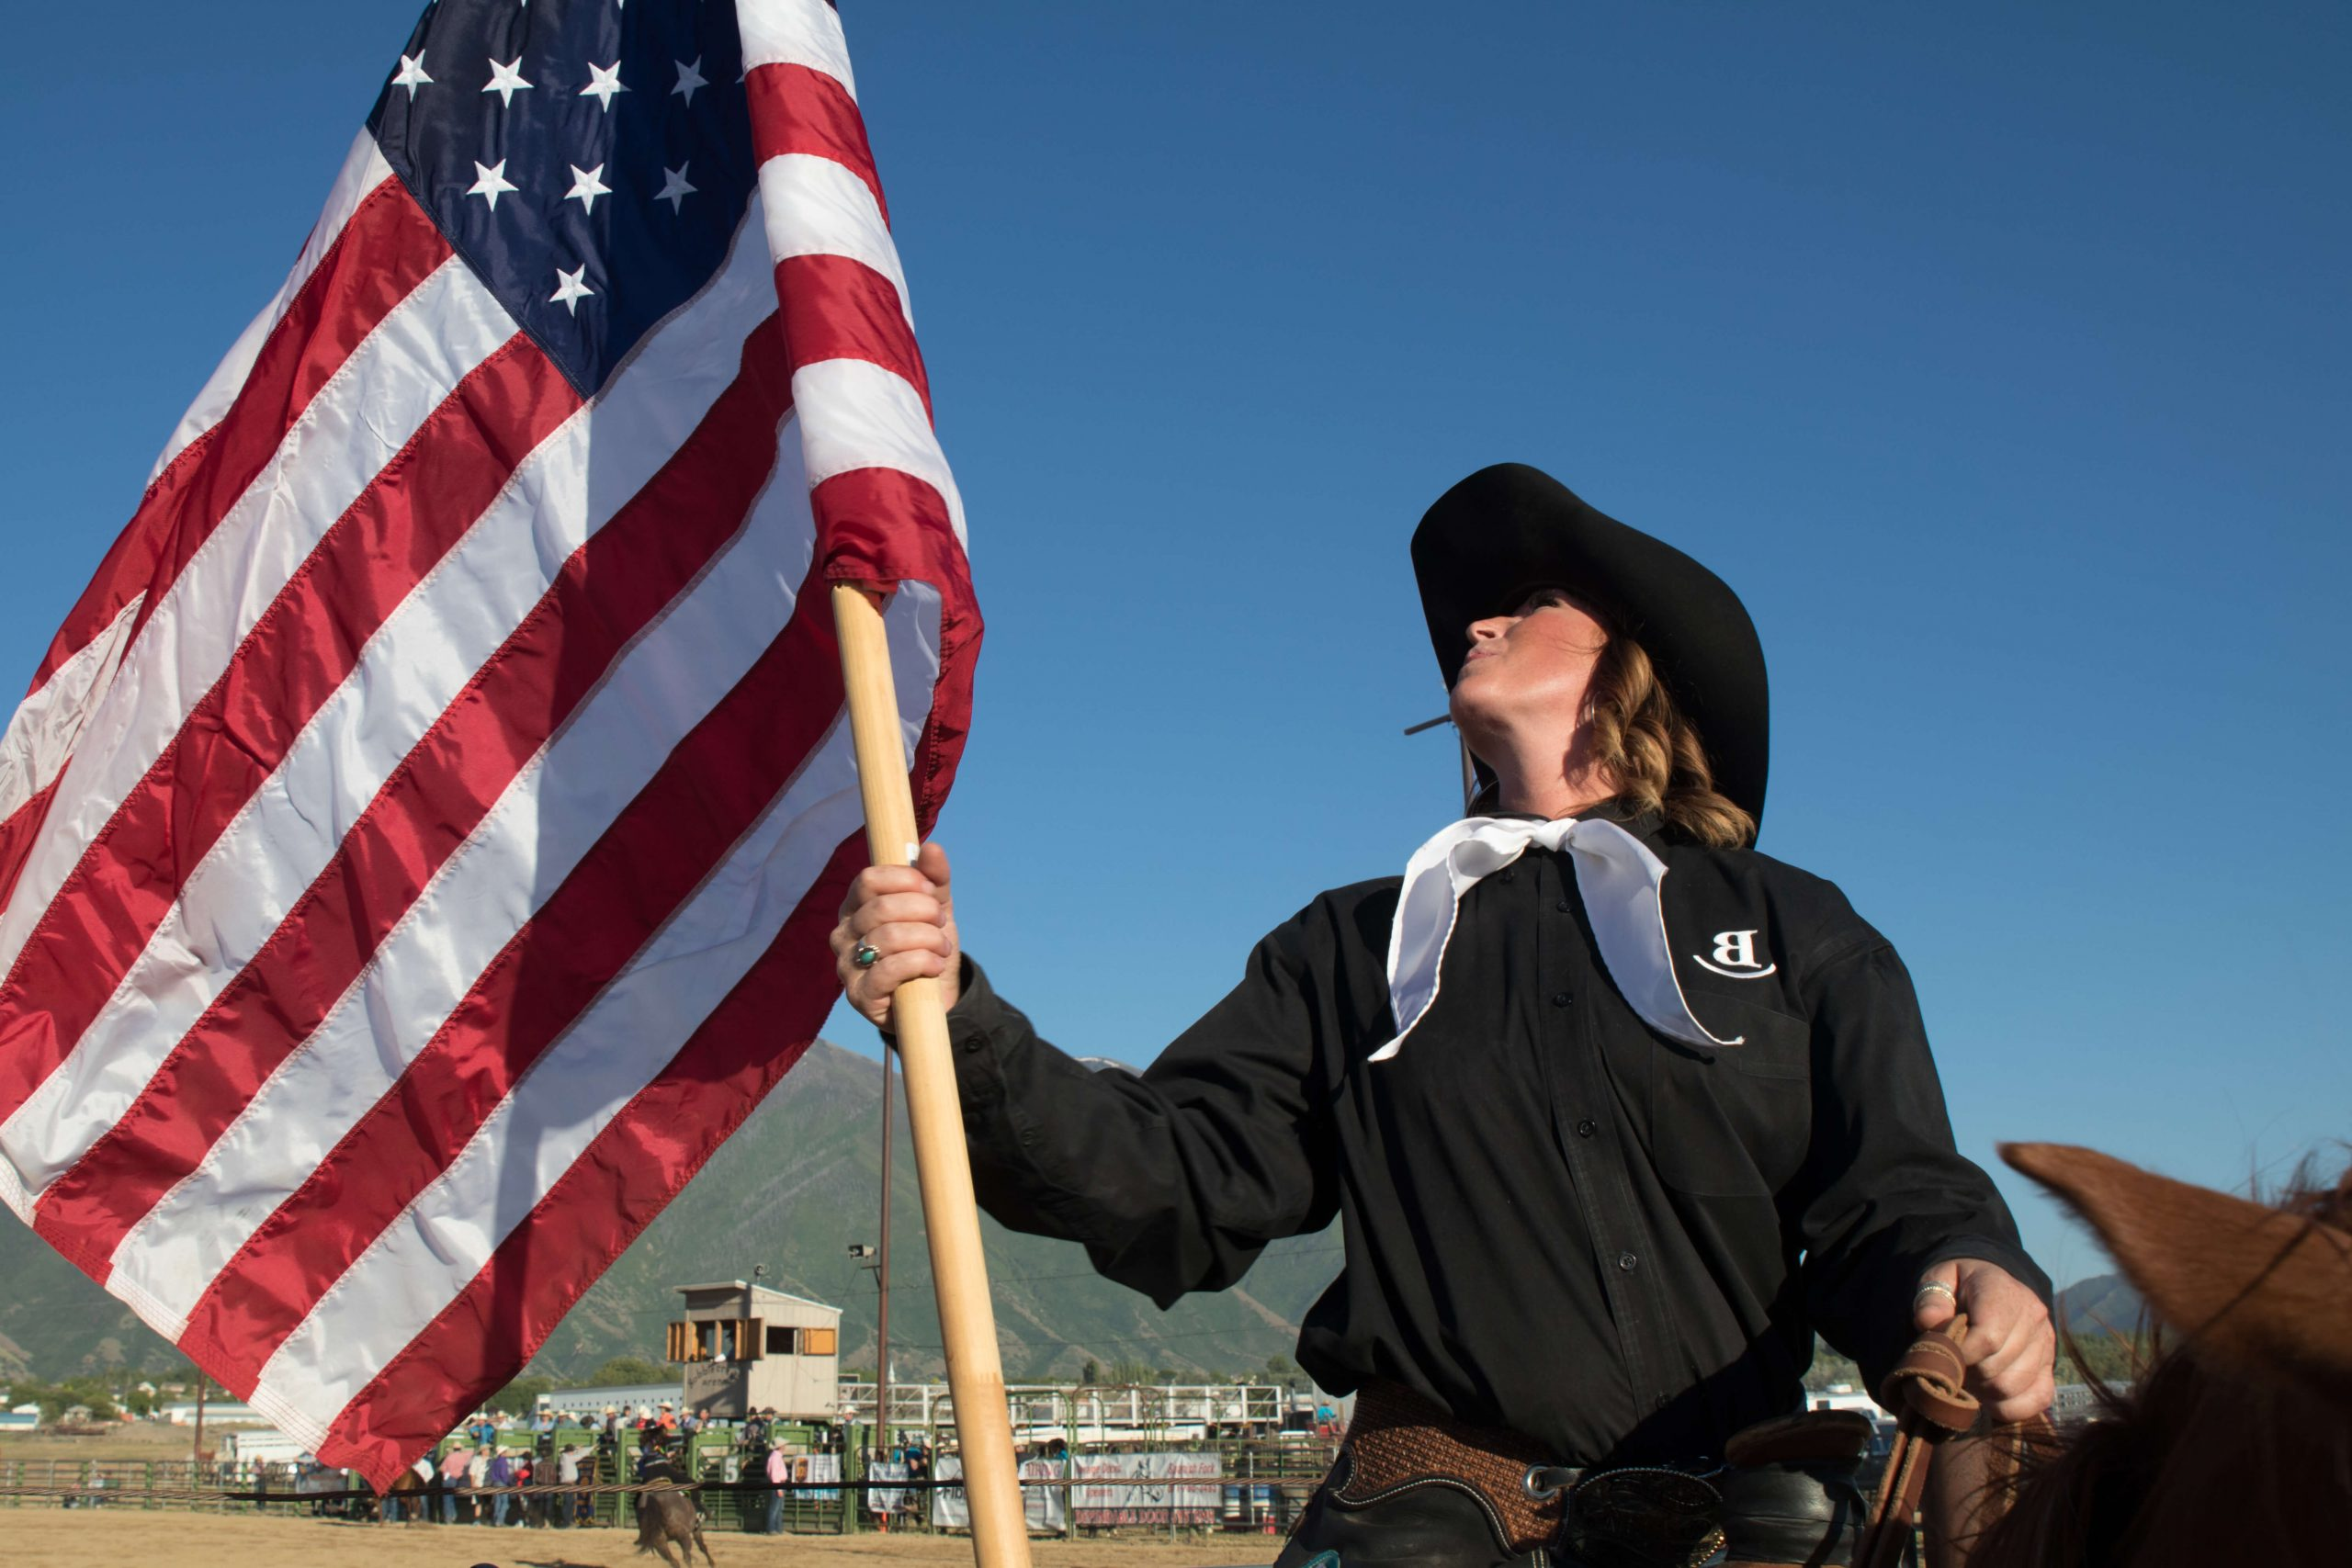 Woman on a Horse Holding the American Flag